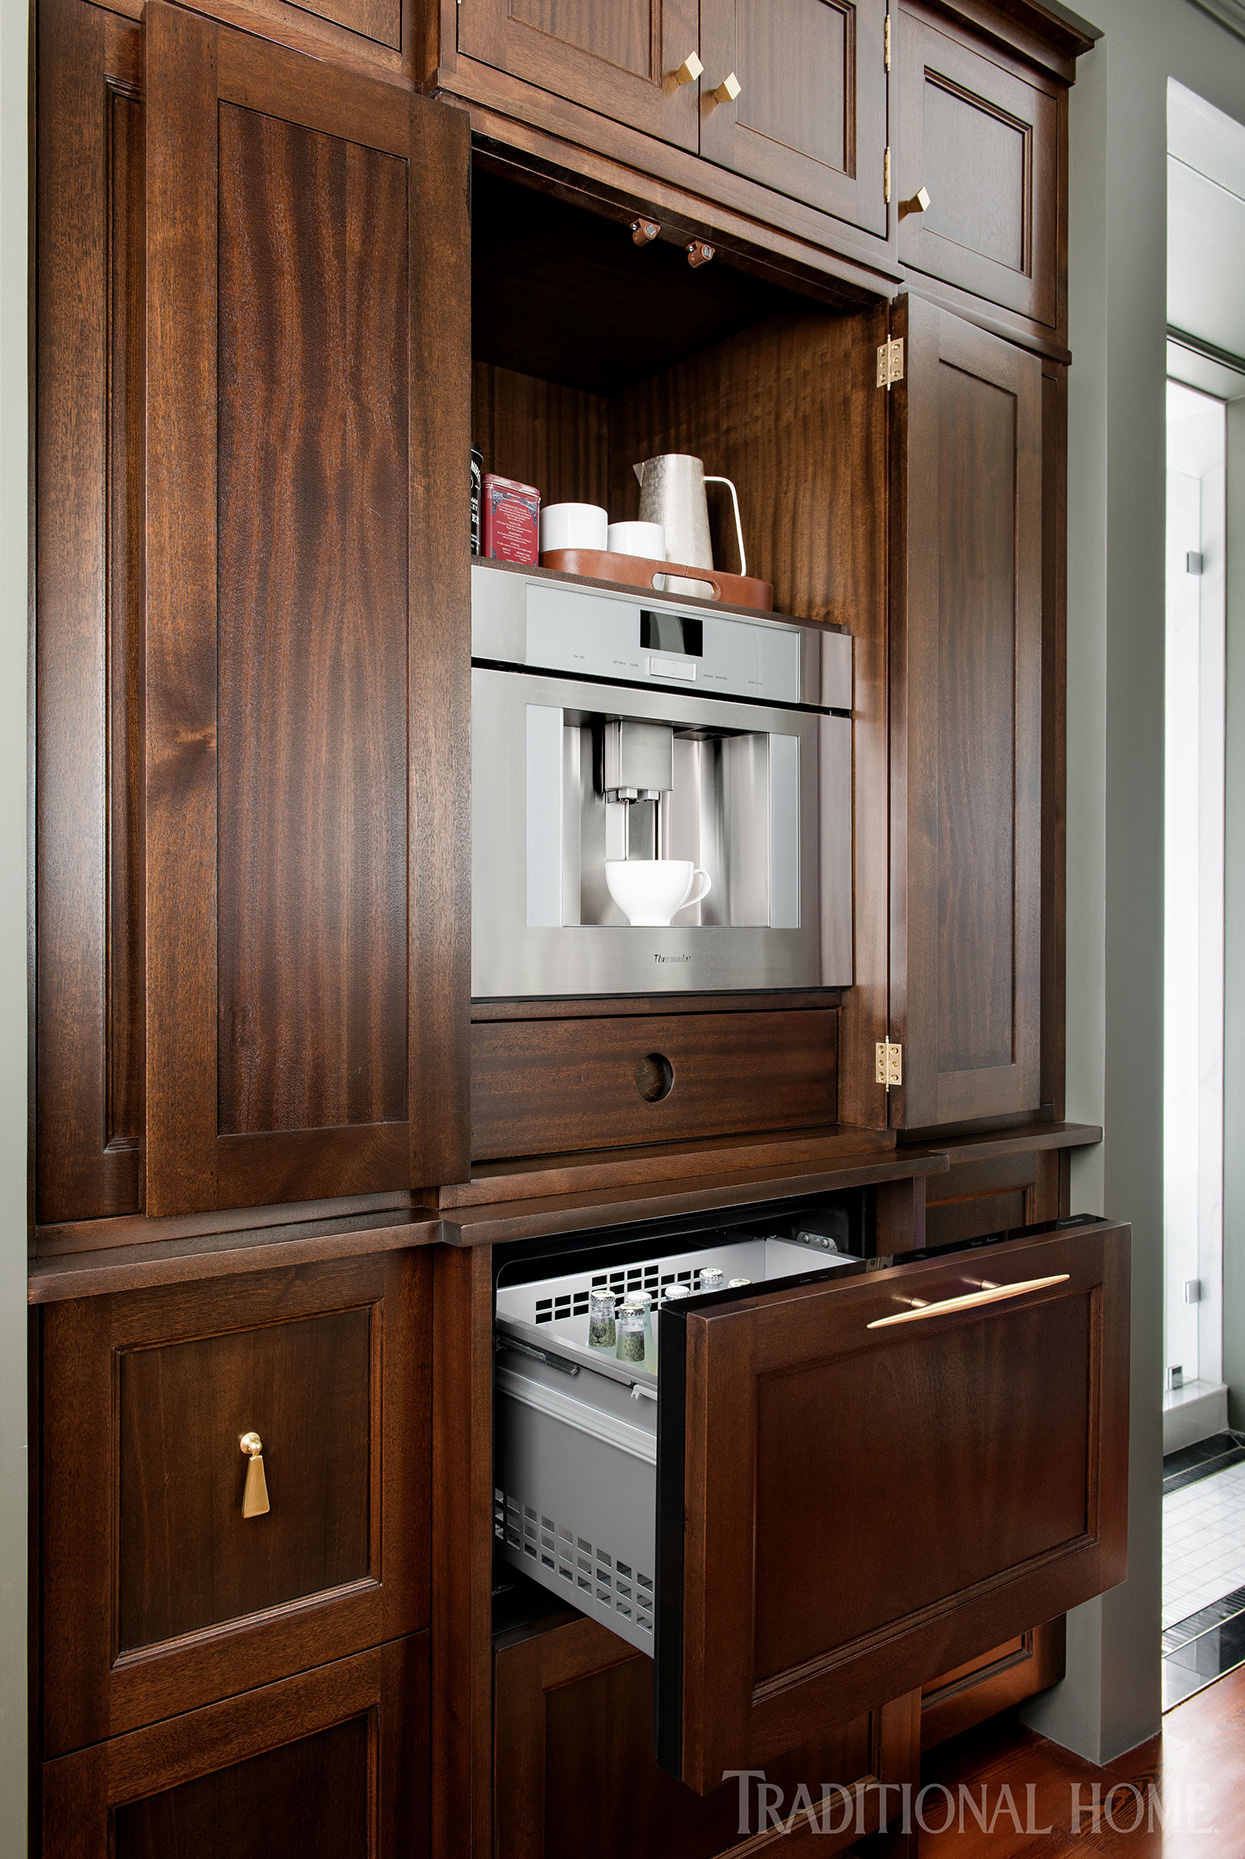 rich wood cabinetry with built-in beverage station